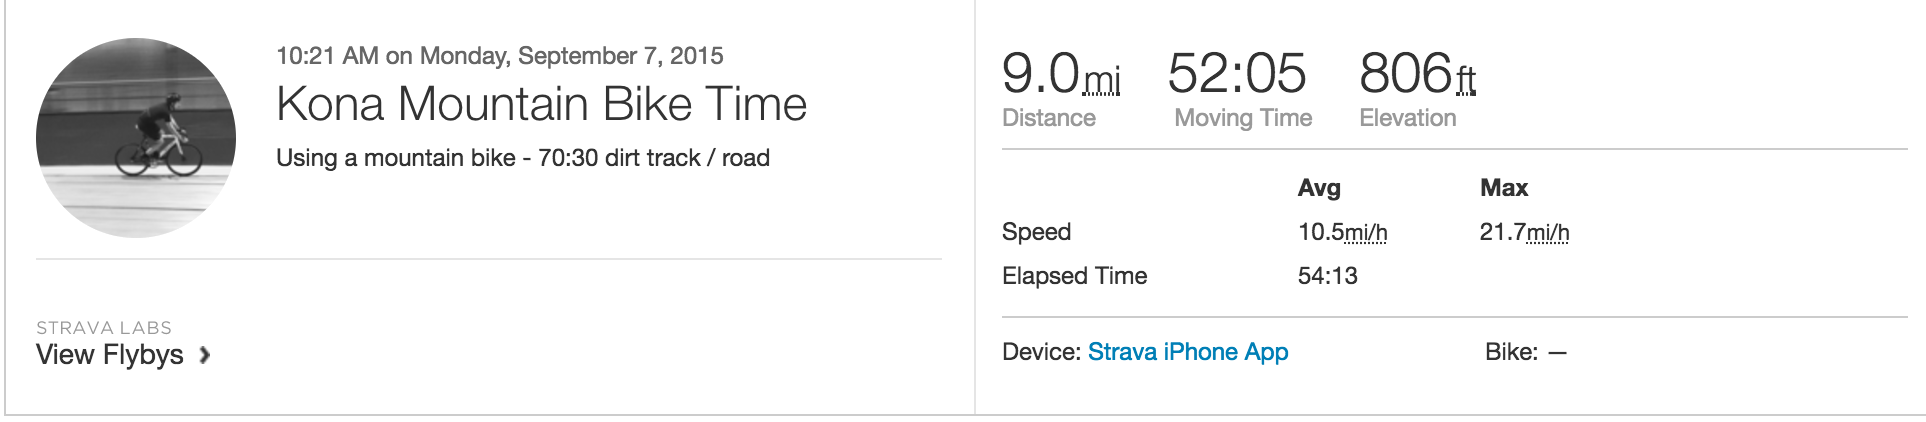 how long does it take to cycle 10 miles?